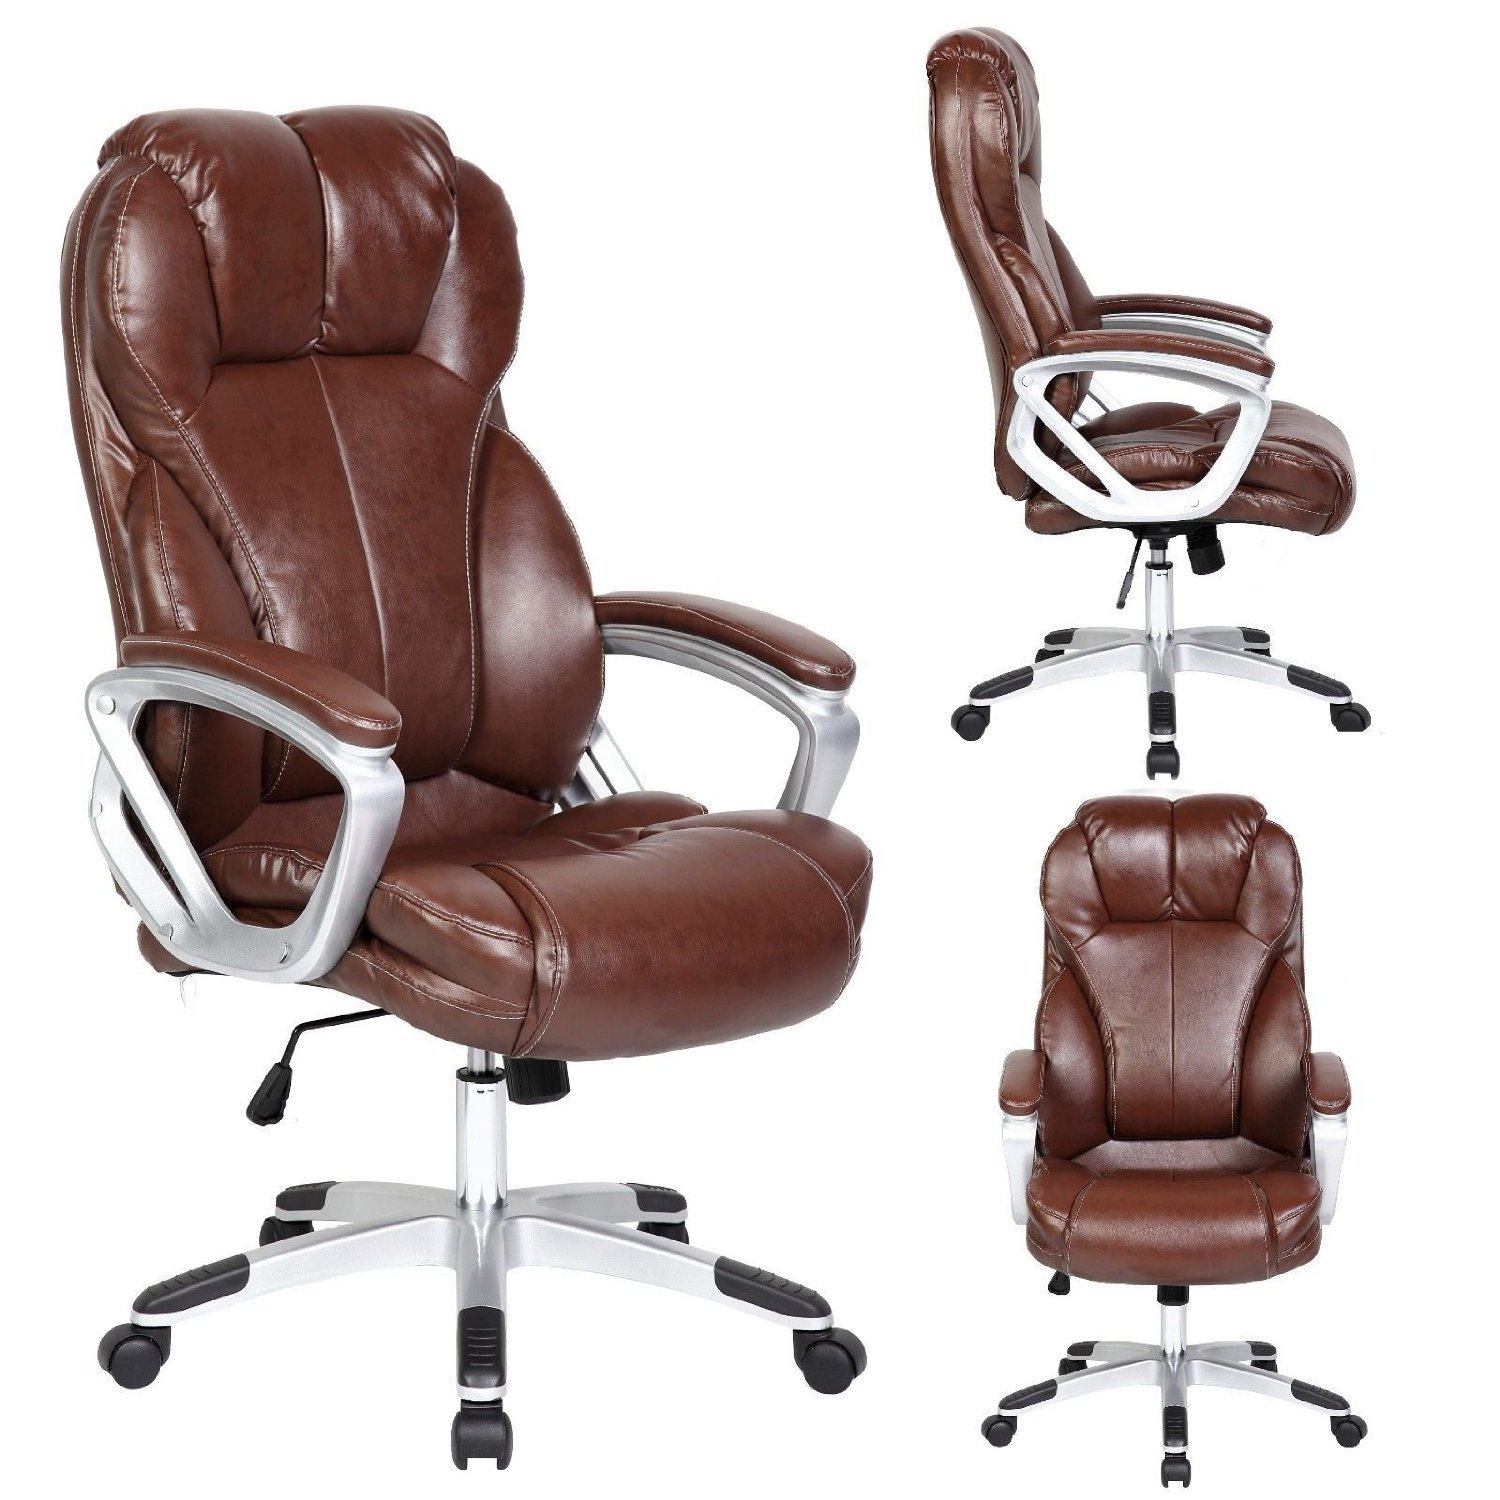 High Back Executive PU Leather Ergonomic Chair O10 brown high back leather office chair  sc 1 st  HomesFeed & 3 Best affordable office chairs under $100 | HomesFeed